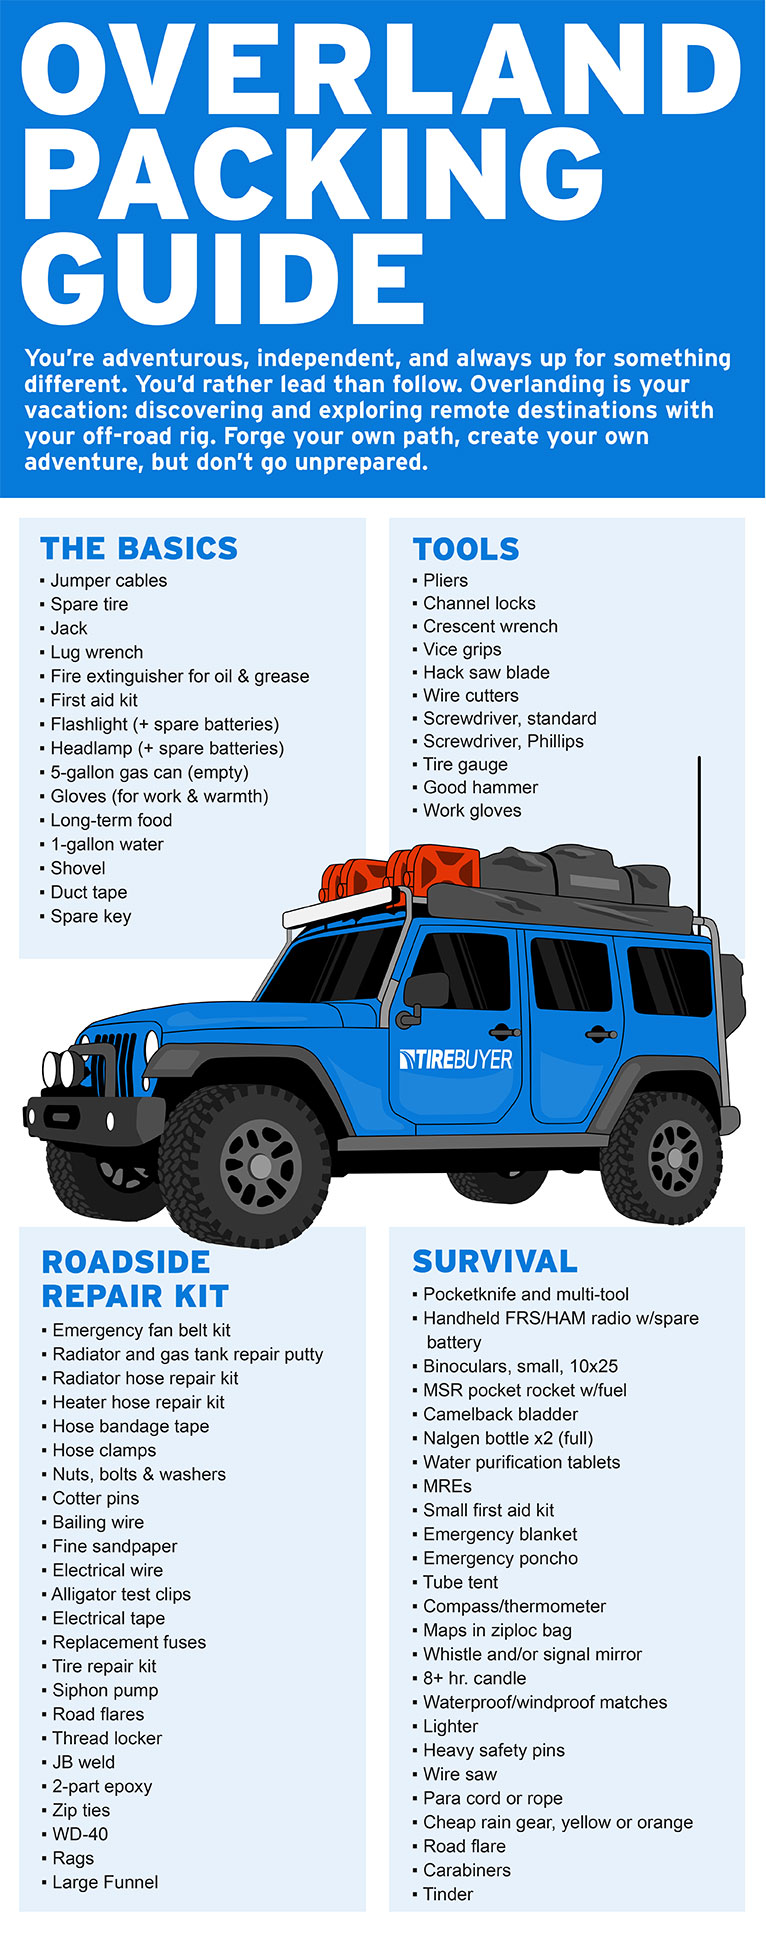 Overlanding must-haves